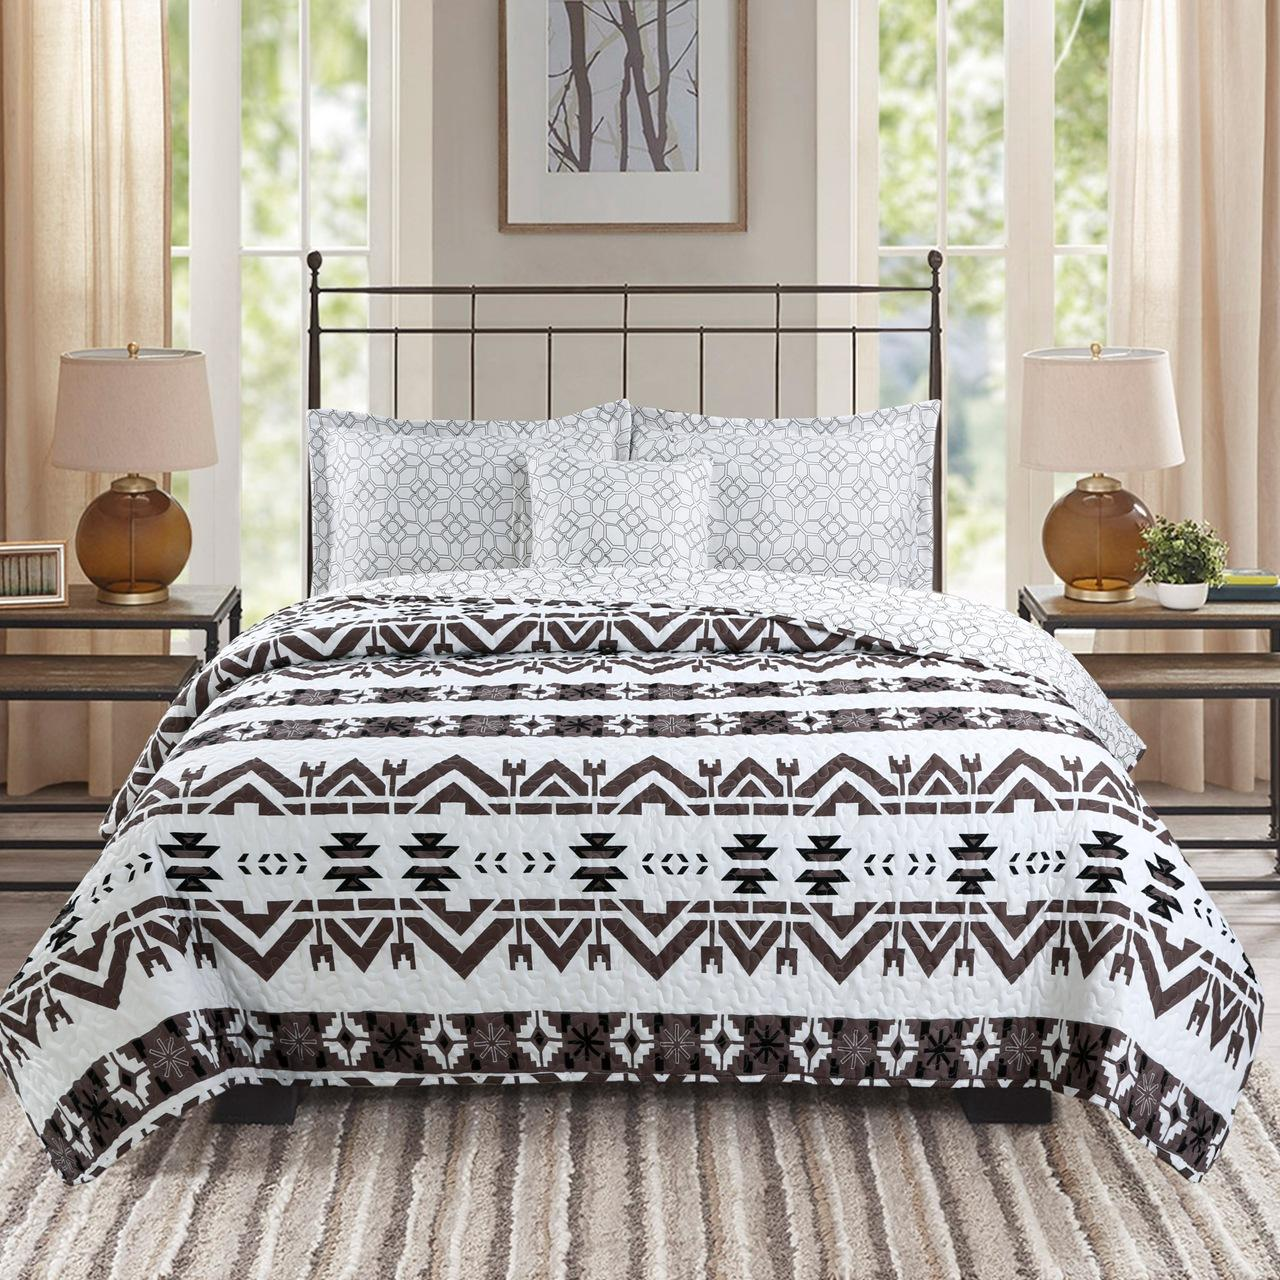 American style Quilt Set 3pcs air conditioner Quilts Cotton Quilted Bedspread 5